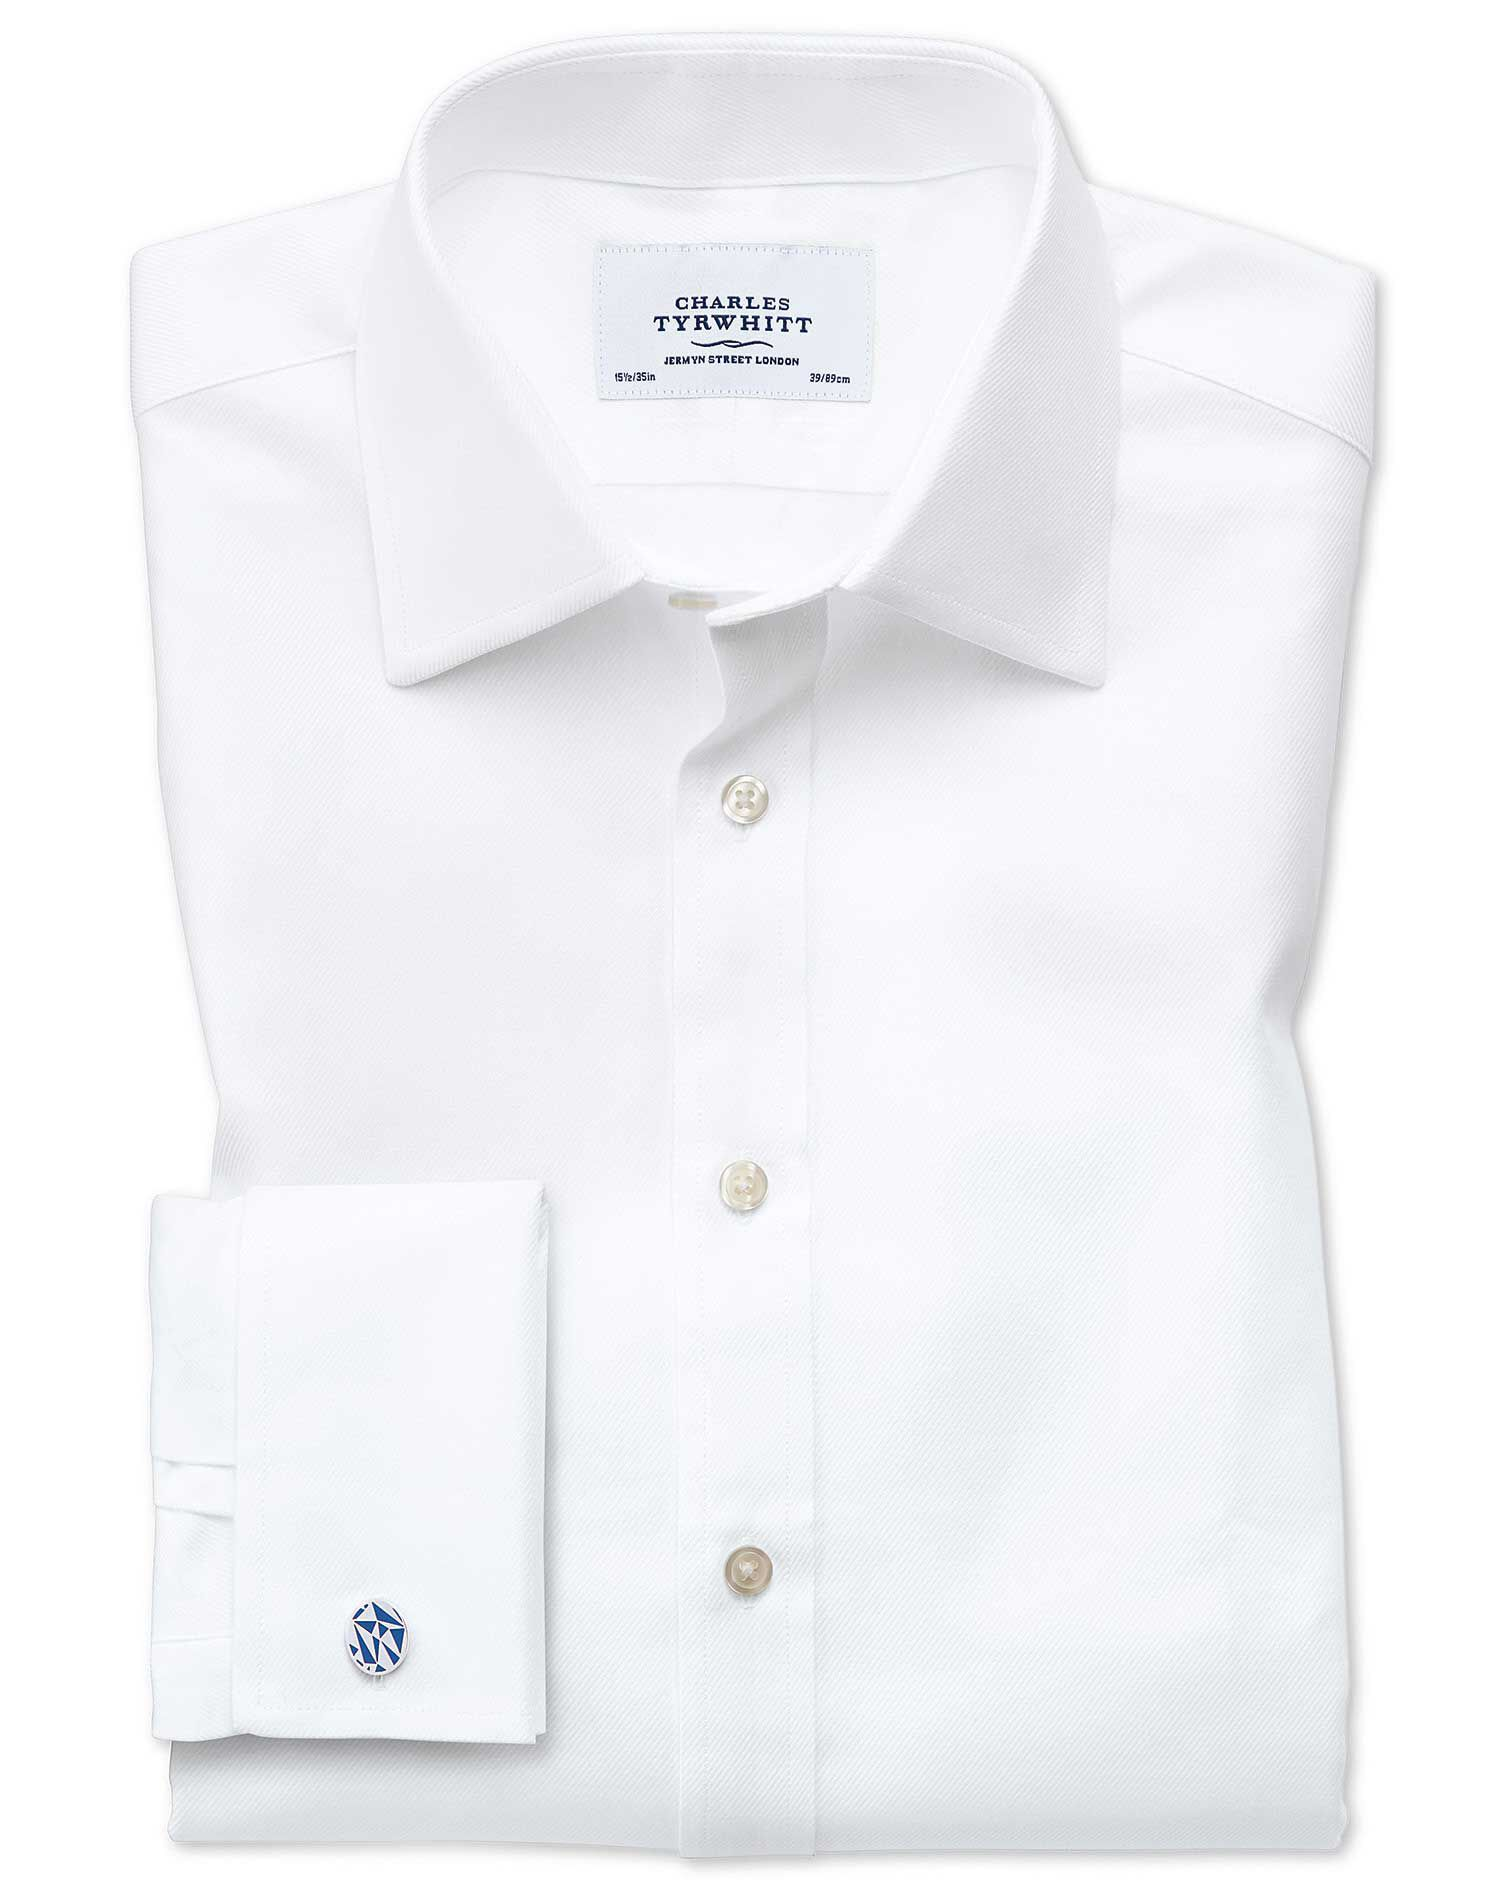 Extra Slim Fit Egyptian Cotton Cavalry Twill White Formal Shirt Single Cuff Size 15.5/32 by Charles